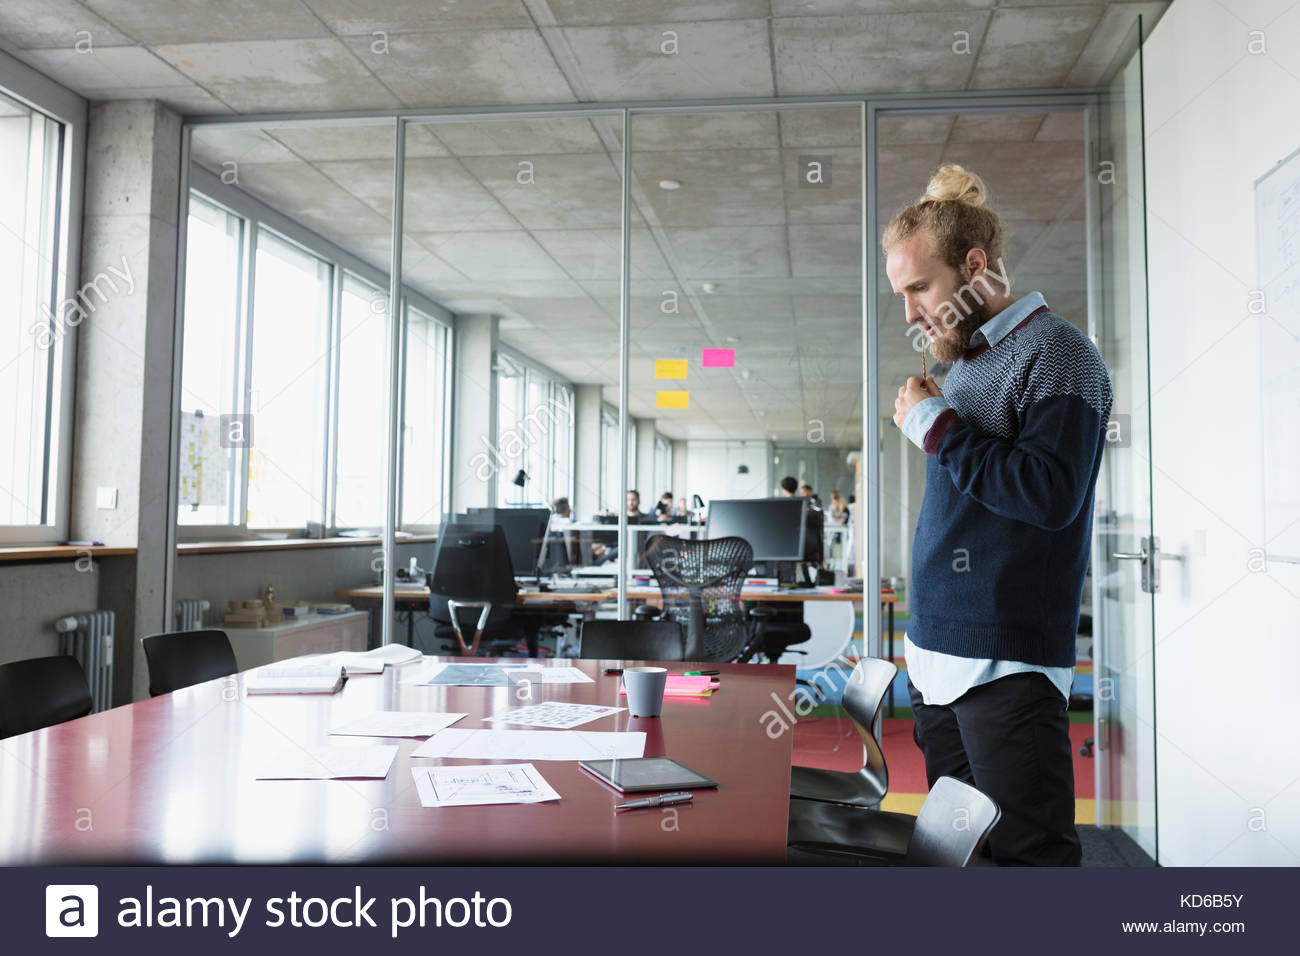 Focused male architect reviewing blueprints in conference room - Stock Image